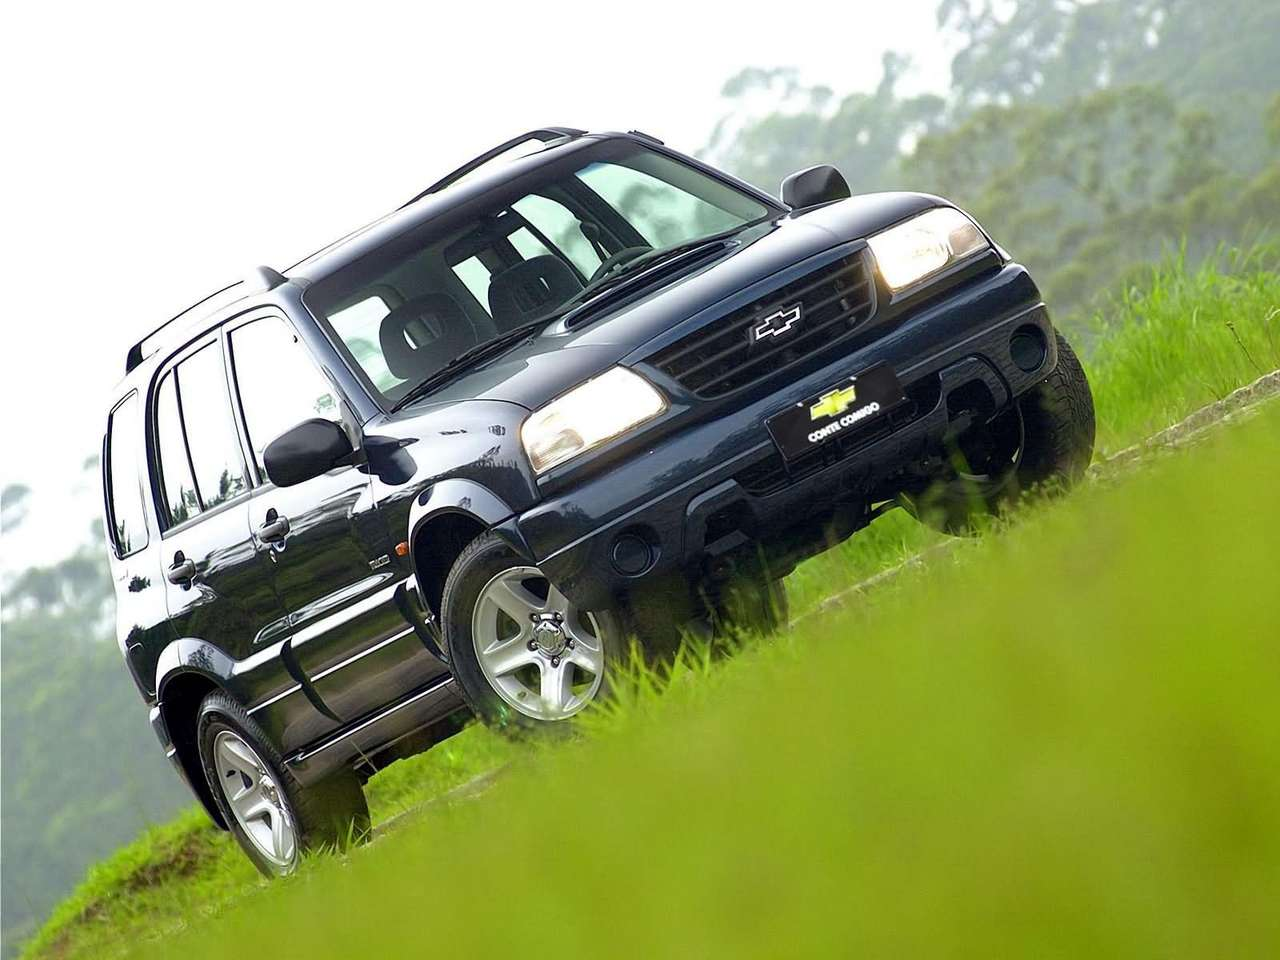 Chevrolet Tracker Turbo 2004